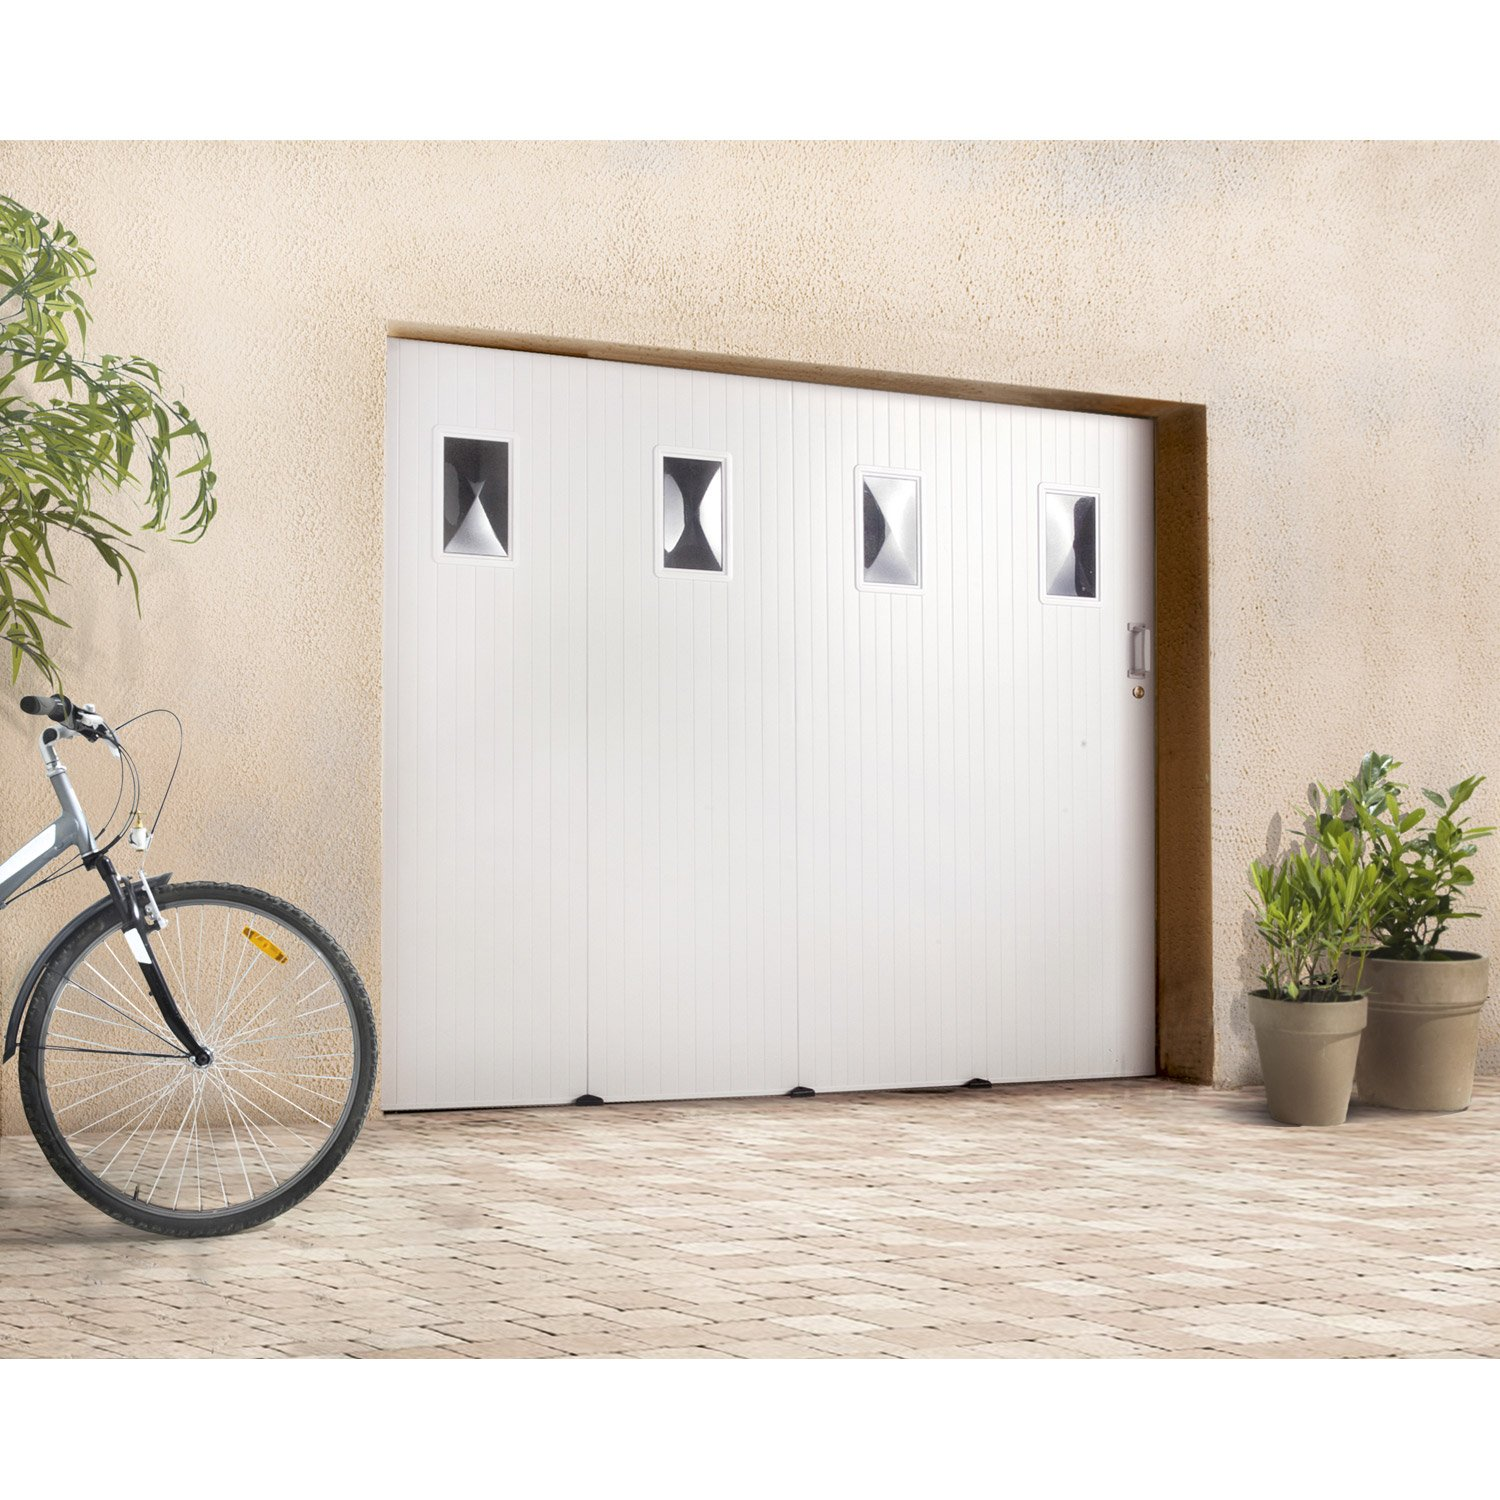 Prix d une porte de garage brico depot isolation id es for Porte de garage en pvc coulissante